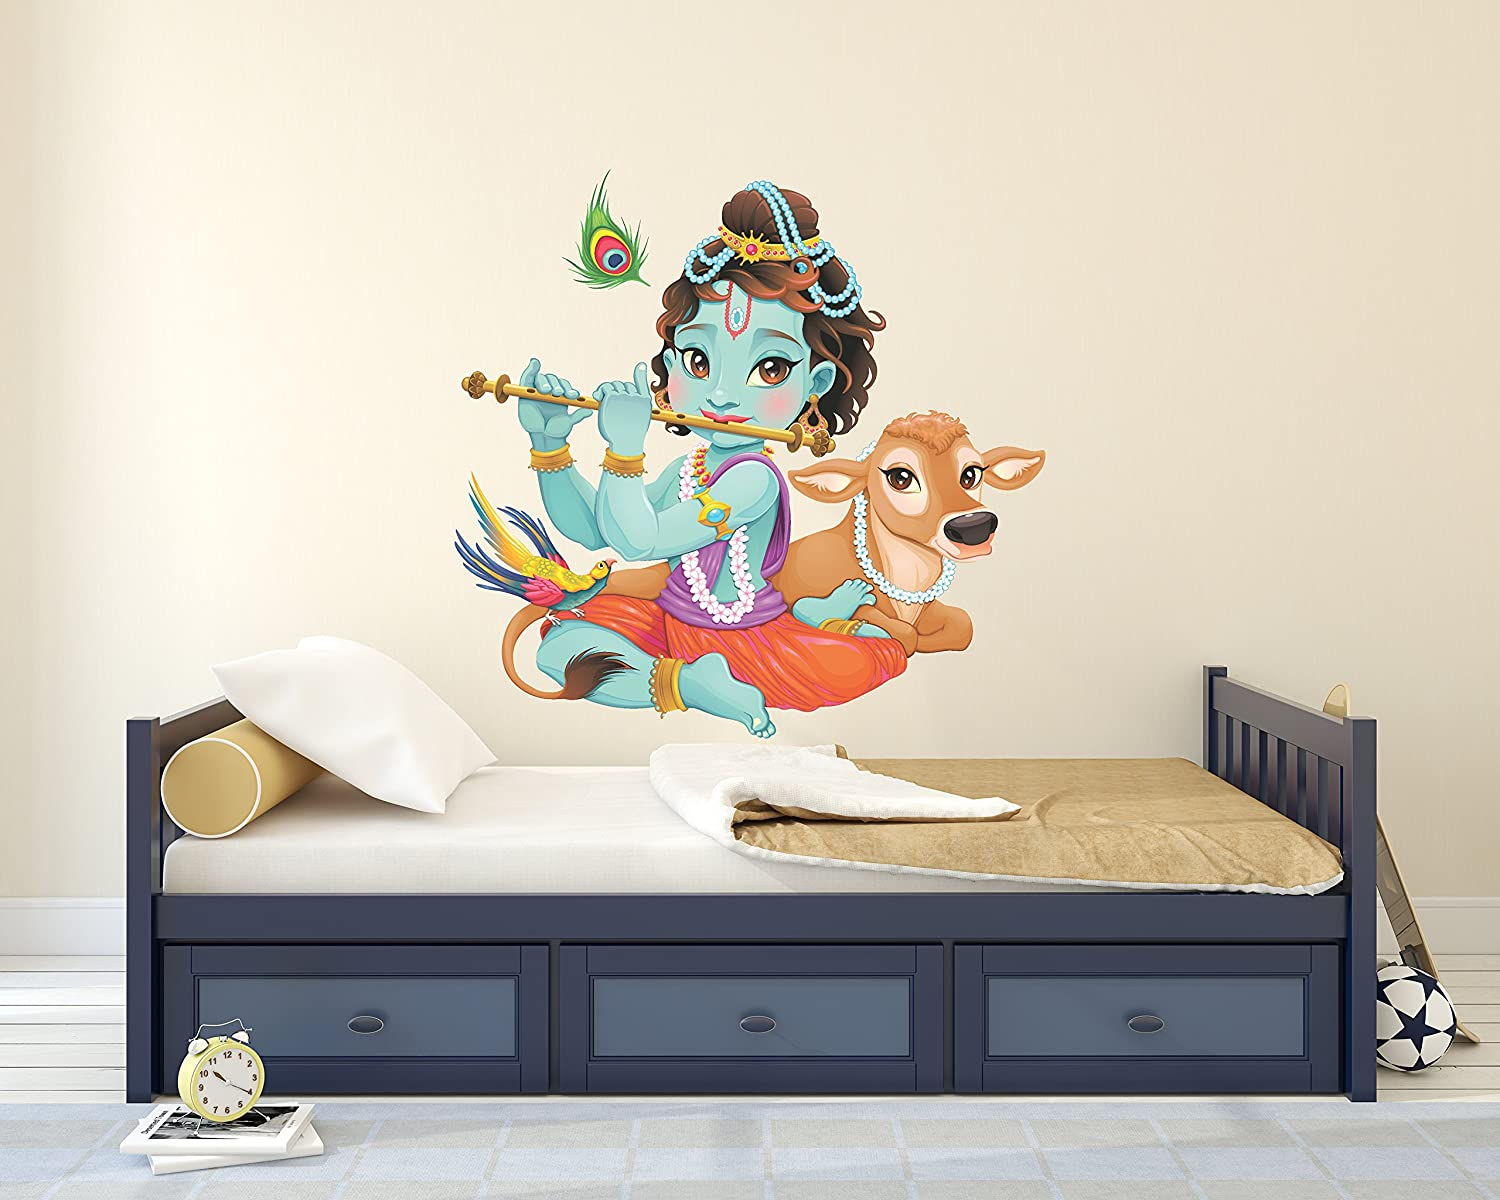 Amazon child krishna playing flute with baby cow wall decal amazon child krishna playing flute with baby cow wall decal baby krishna playing flute indian deity wall decoration wdset10077 home kitchen amipublicfo Gallery